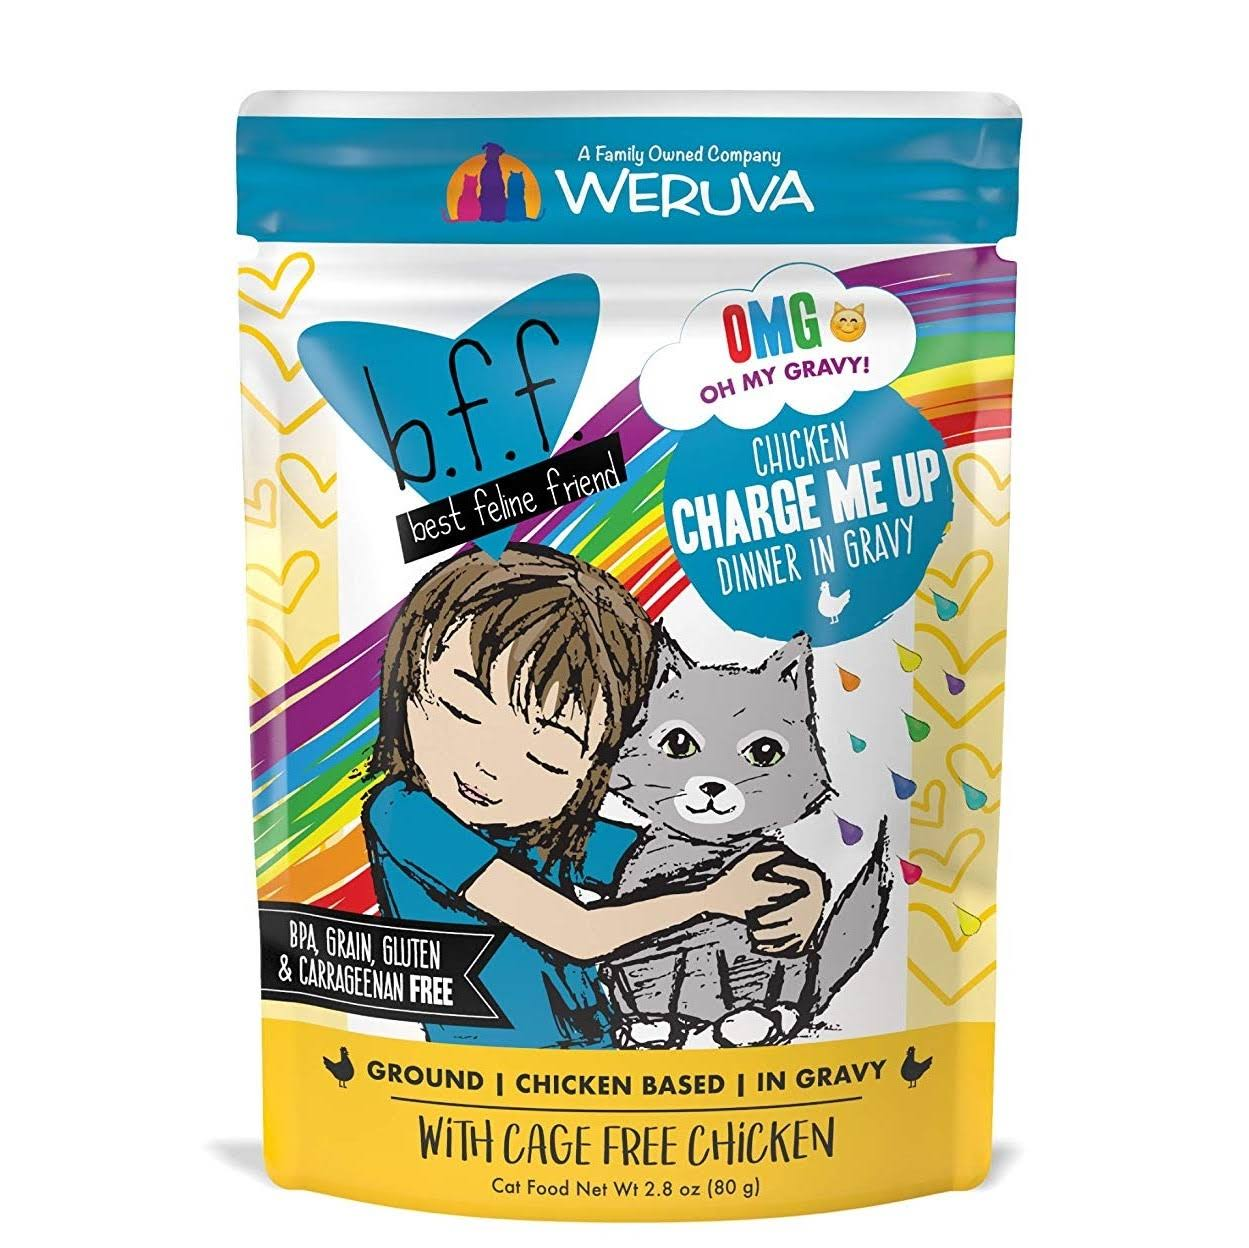 Weruva BFF Chicken Charge Me Up Recipe 3oz Pouch Single